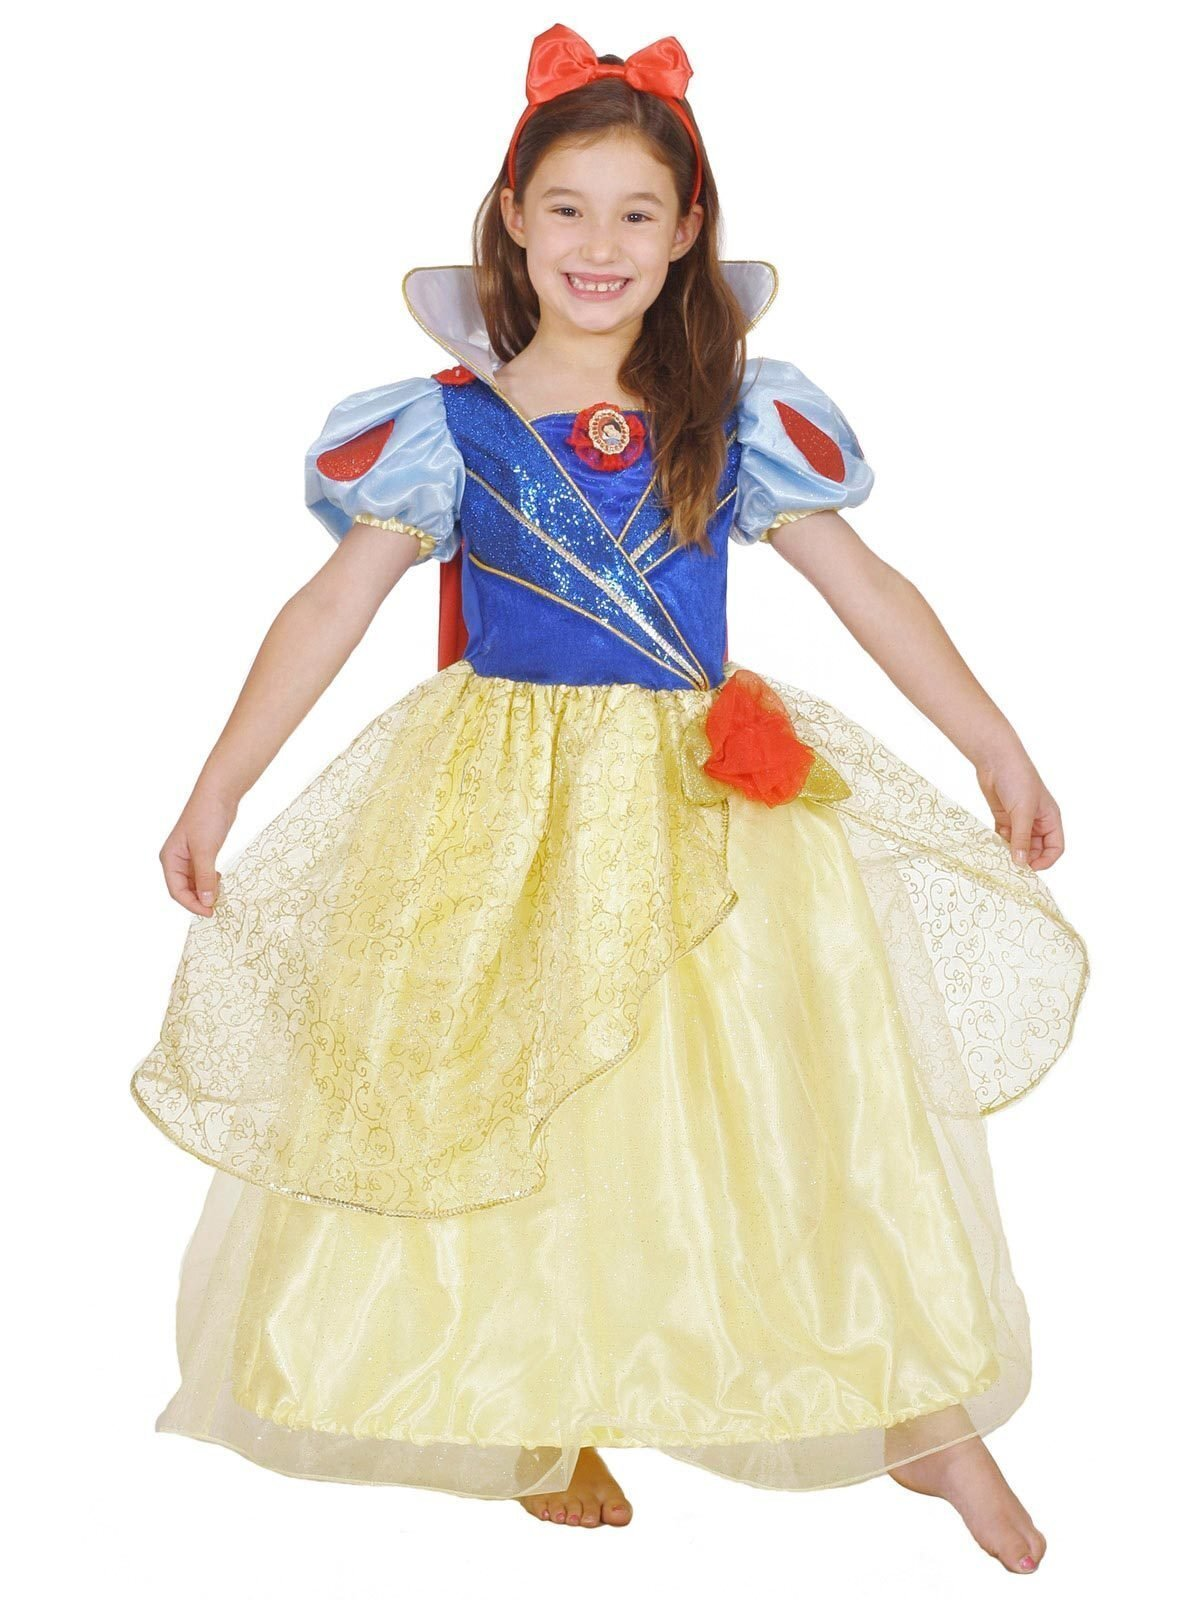 Snow White Glitter and Glow Premium Child Costume - Buy Online Only